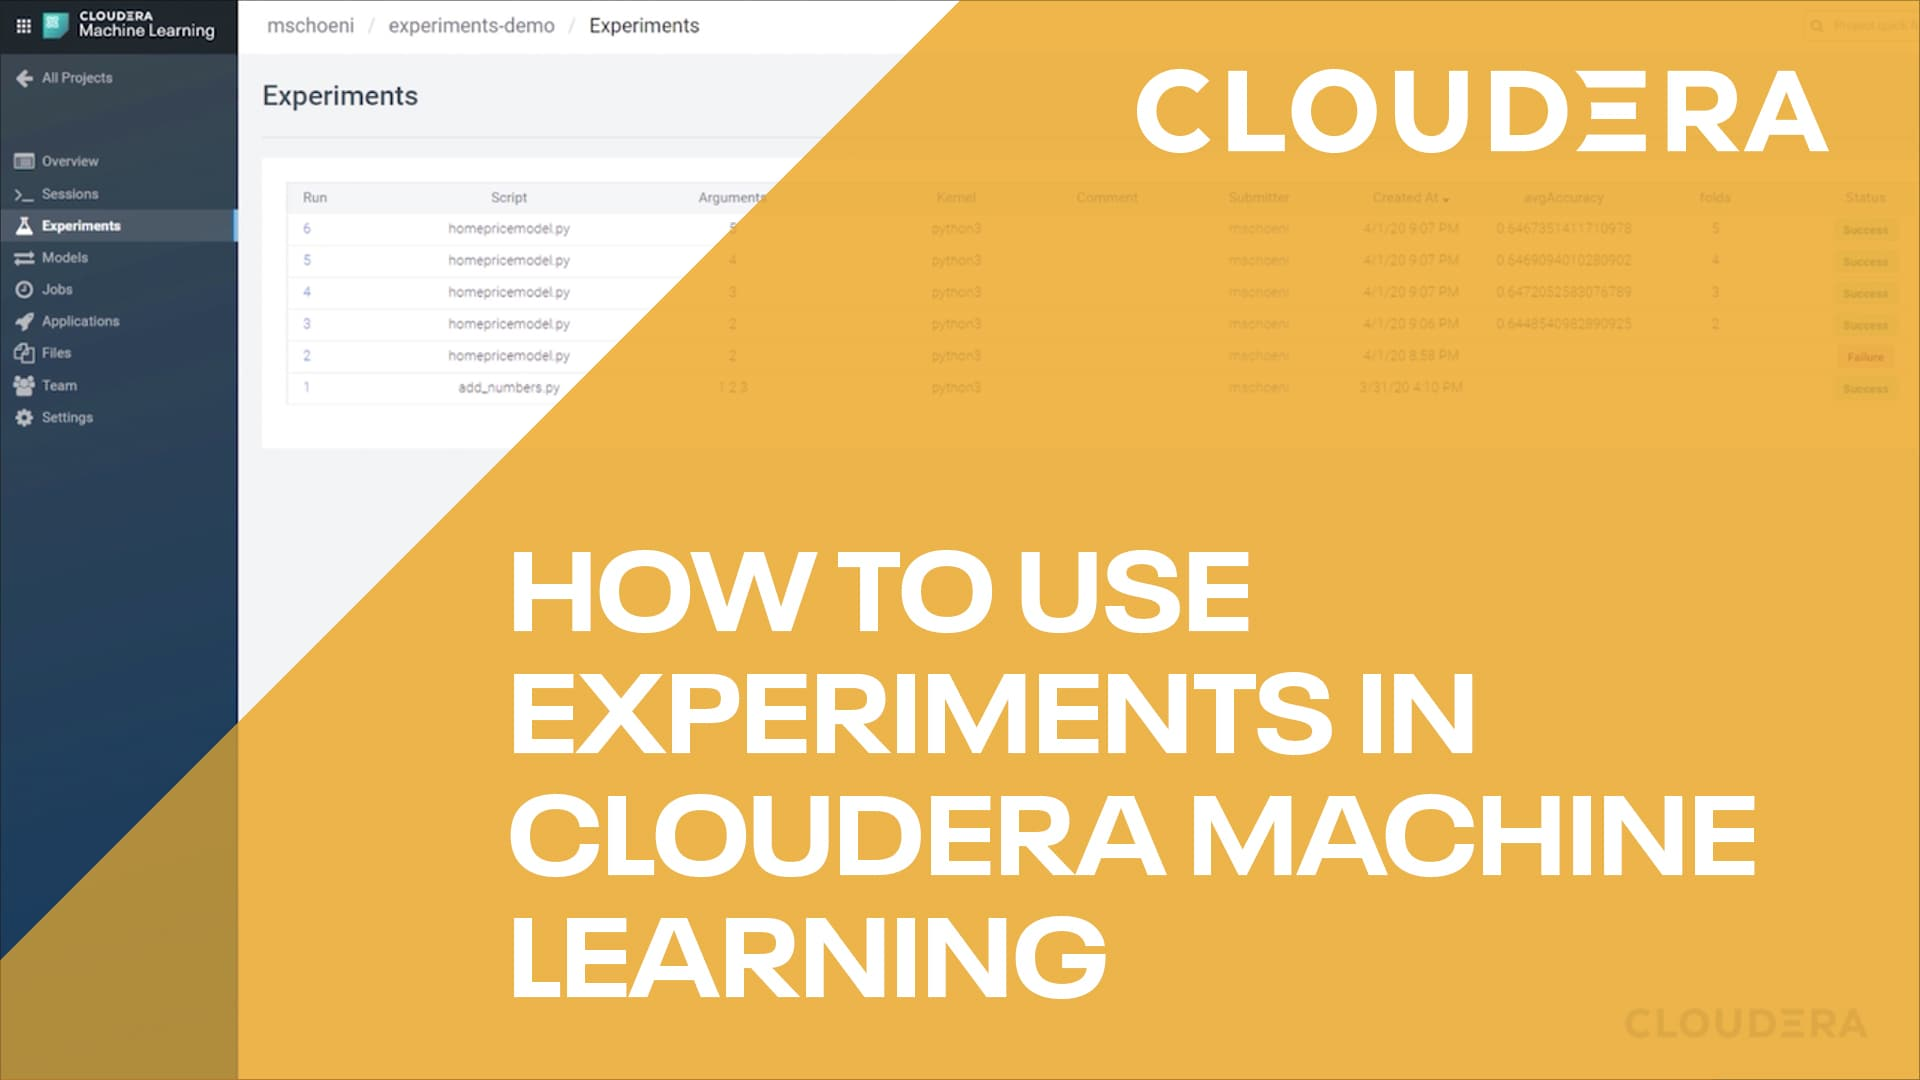 How to use experiments in Cloudera Machine Learning video